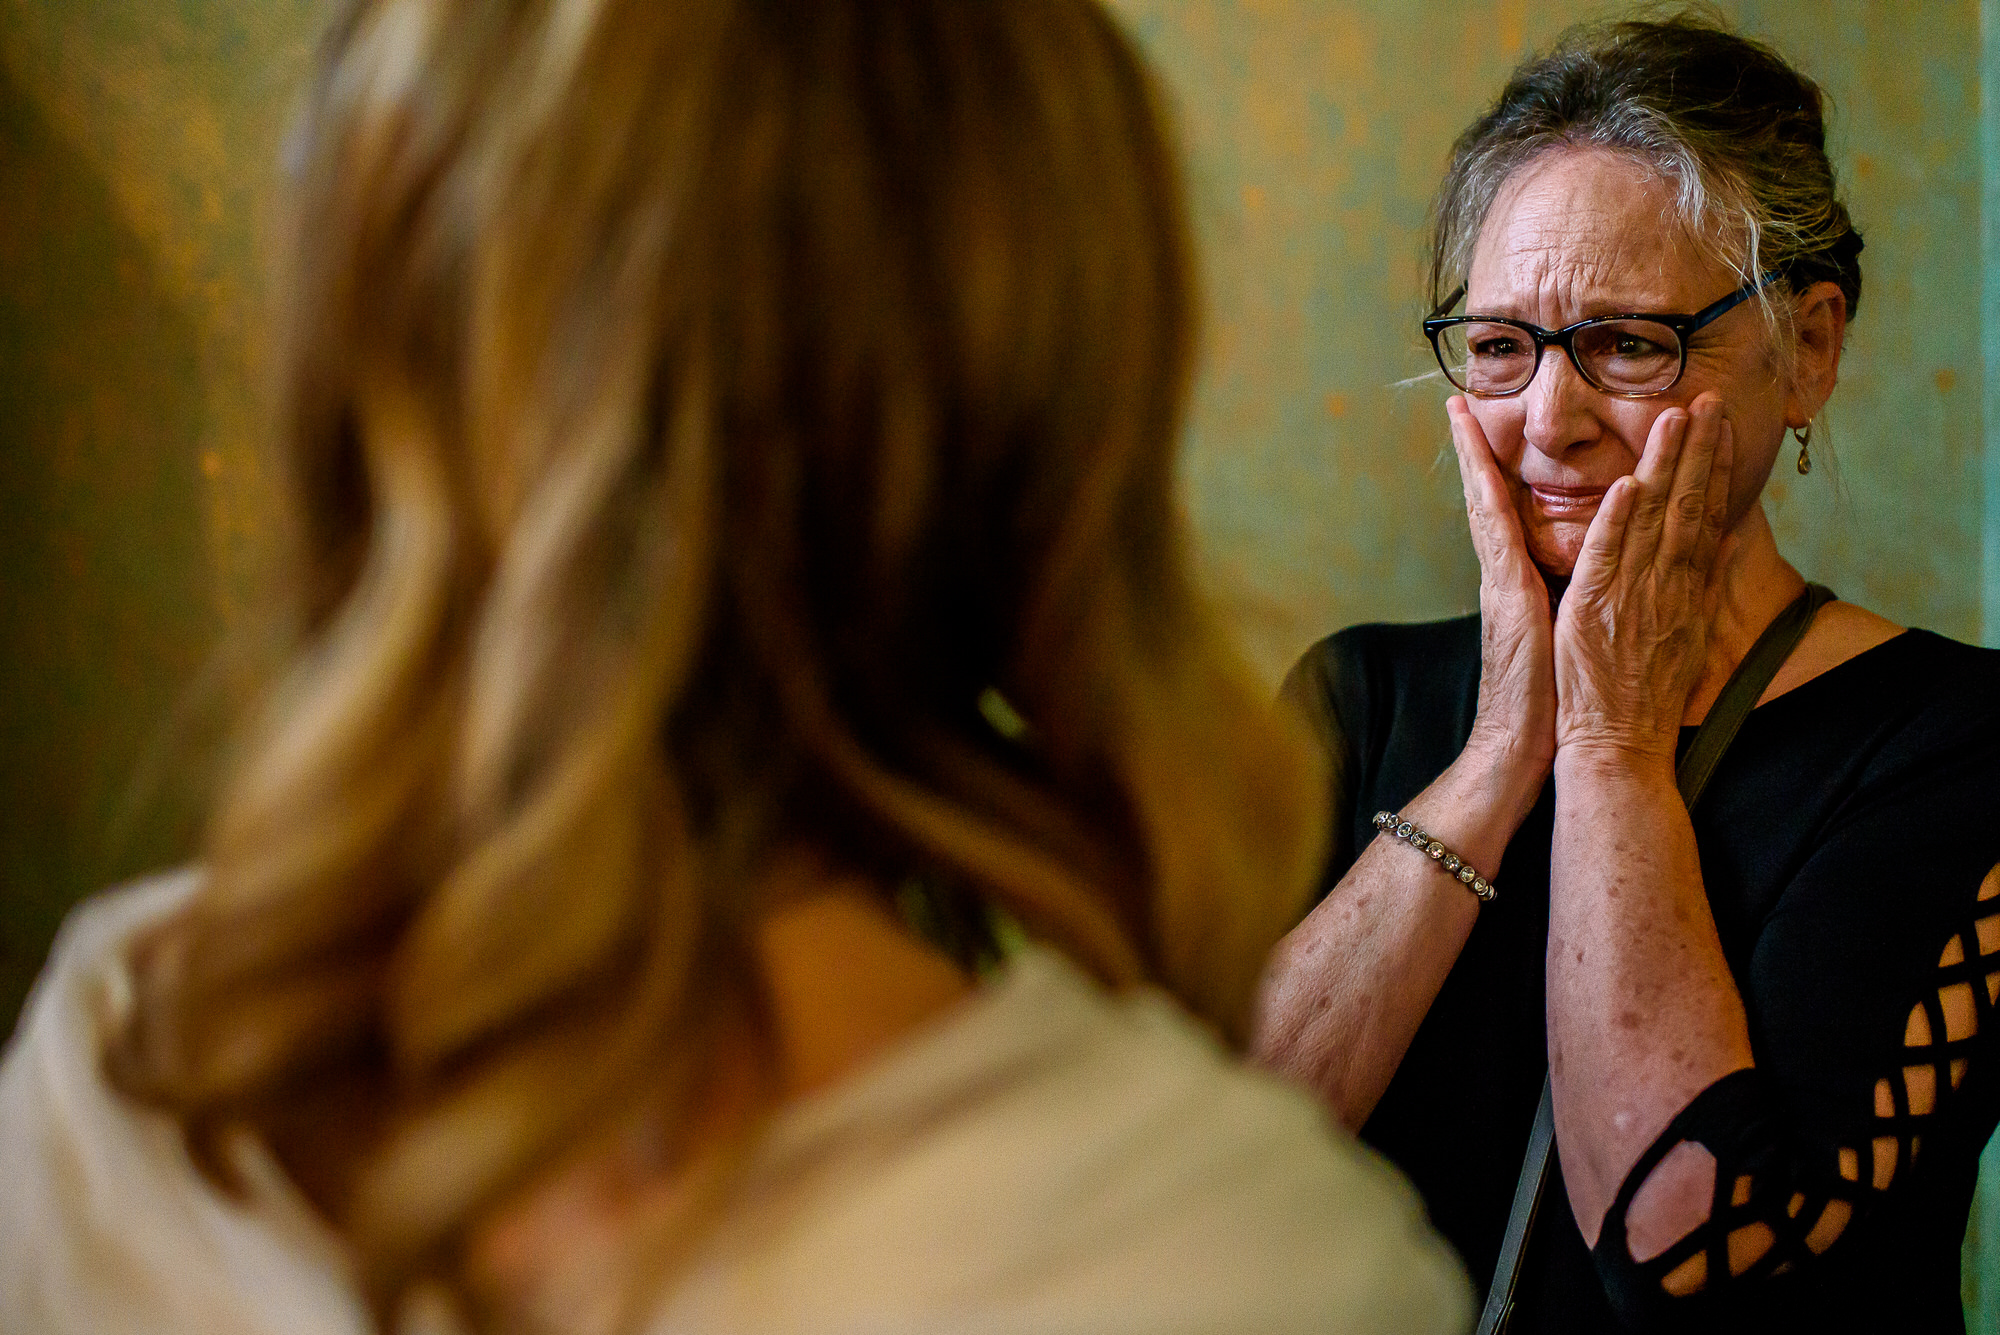 Mom breaks down crying seeing her daughter in wedding dress - photo by Tyler Wirken